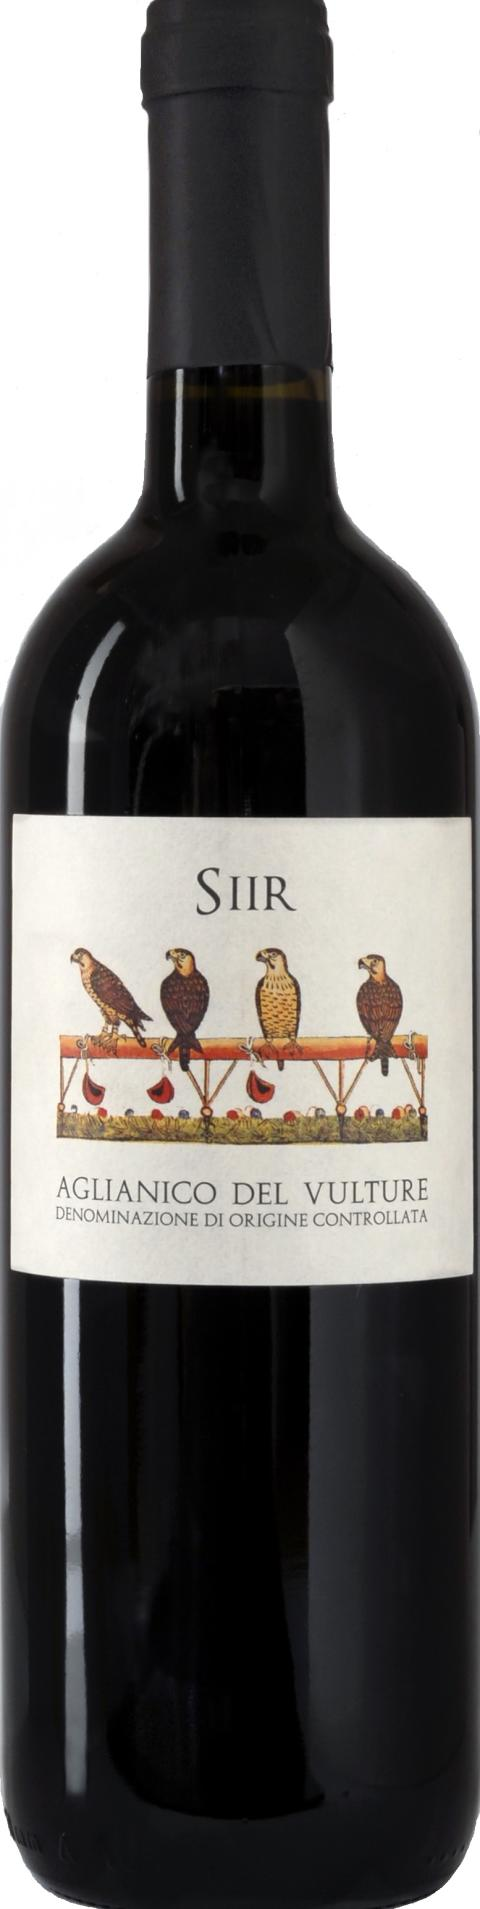 Organic Aglianico del Vulture DOC ´Siir´ by San Martino, represented by iVinaio.com, is launched at the Norwegian alcohol monopoly, Vinmonopolet